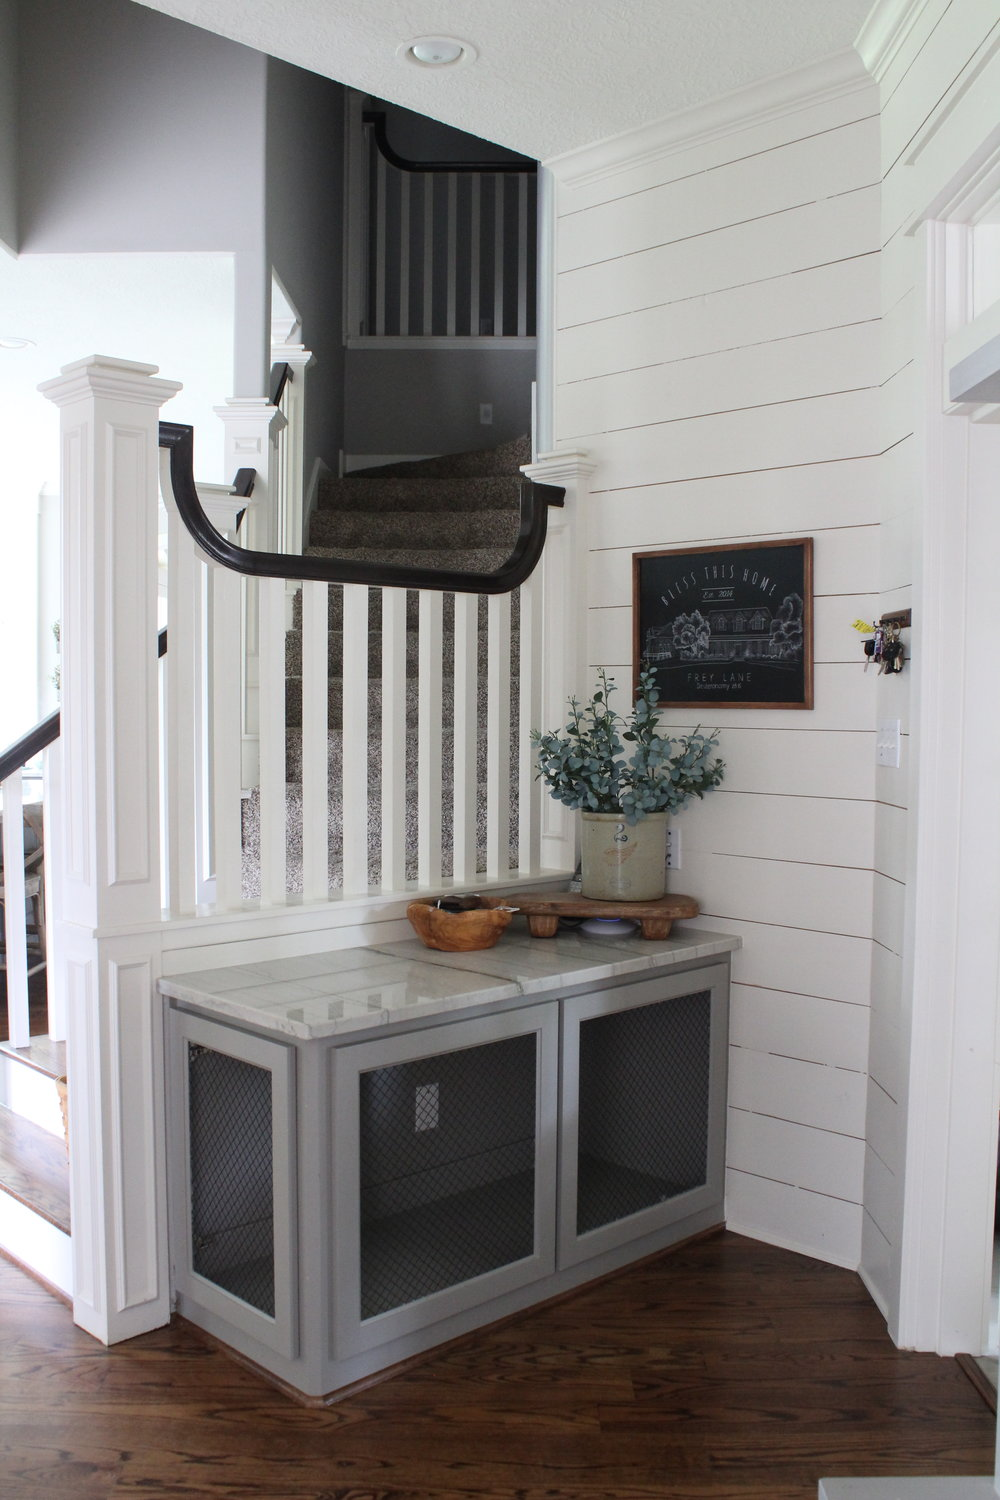 built-in mudroom dog kennel (photo credit: Southern Farmhouse Designs)